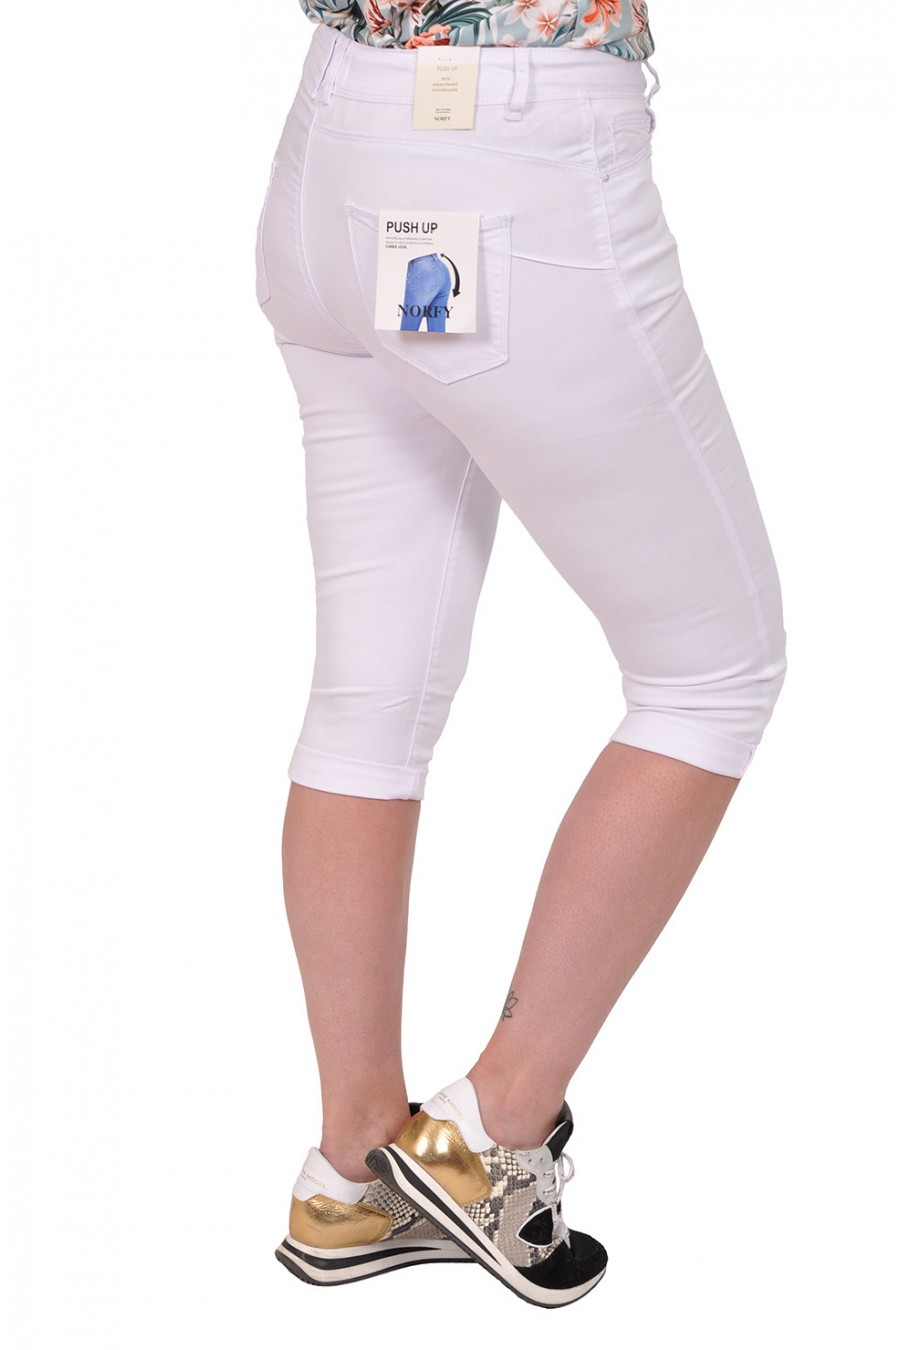 Norfy push up stretch capri wit Norfy